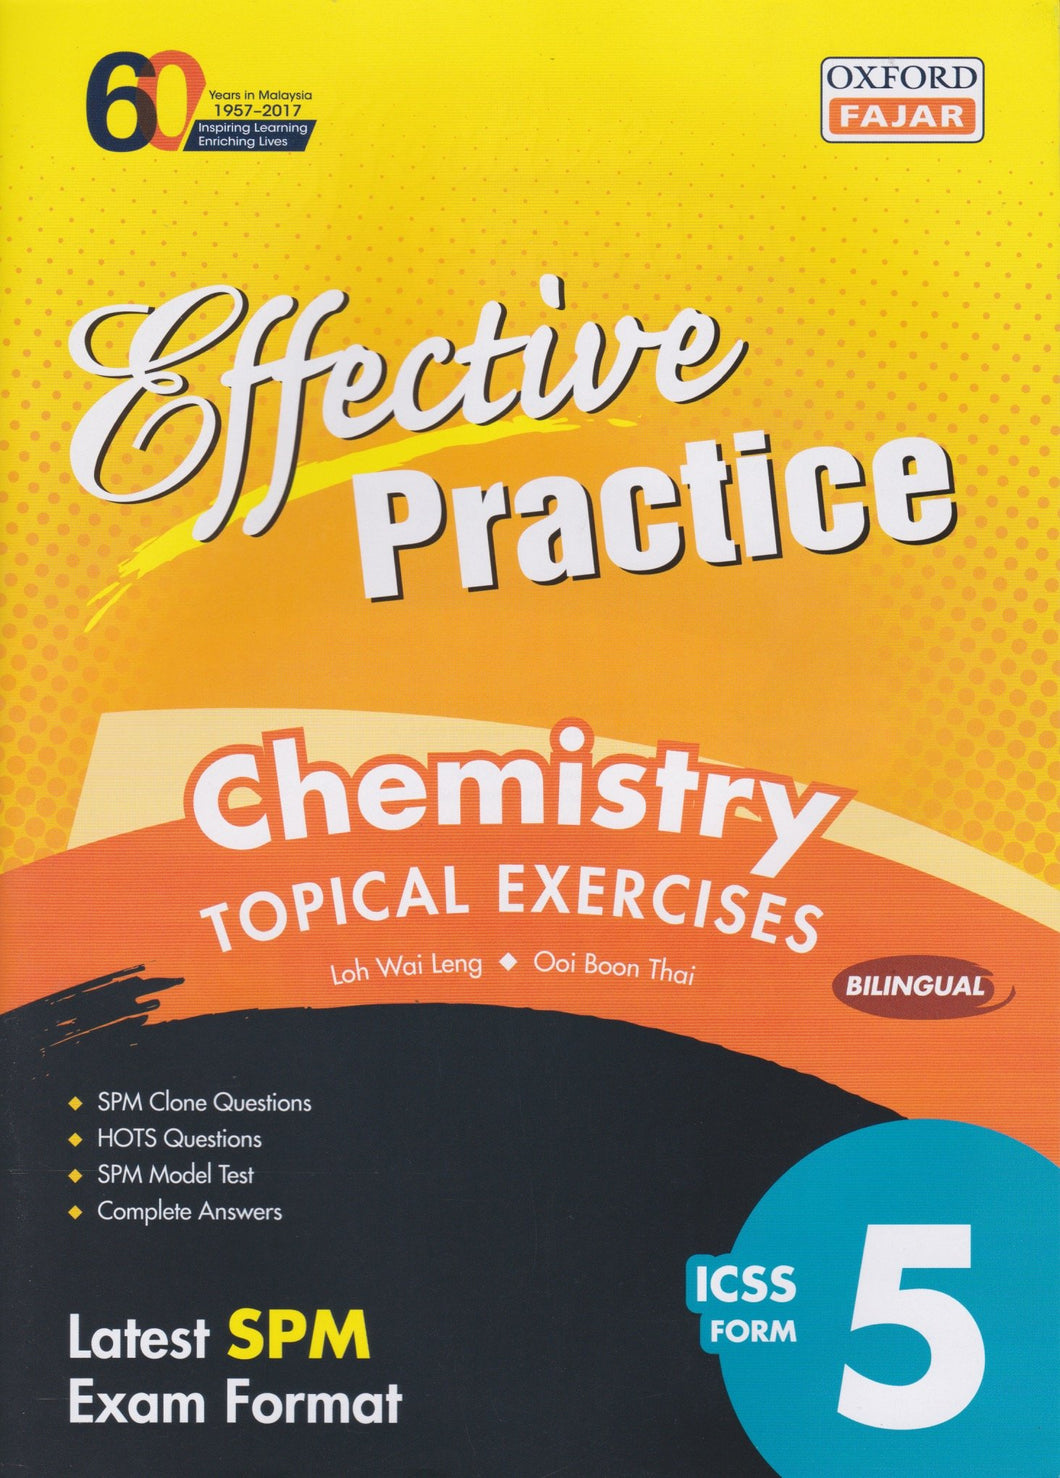 Oxford Fajar-Effective Practice: Chemistry Topical Exercises Form 5-9789834722678-BukuDBP.com